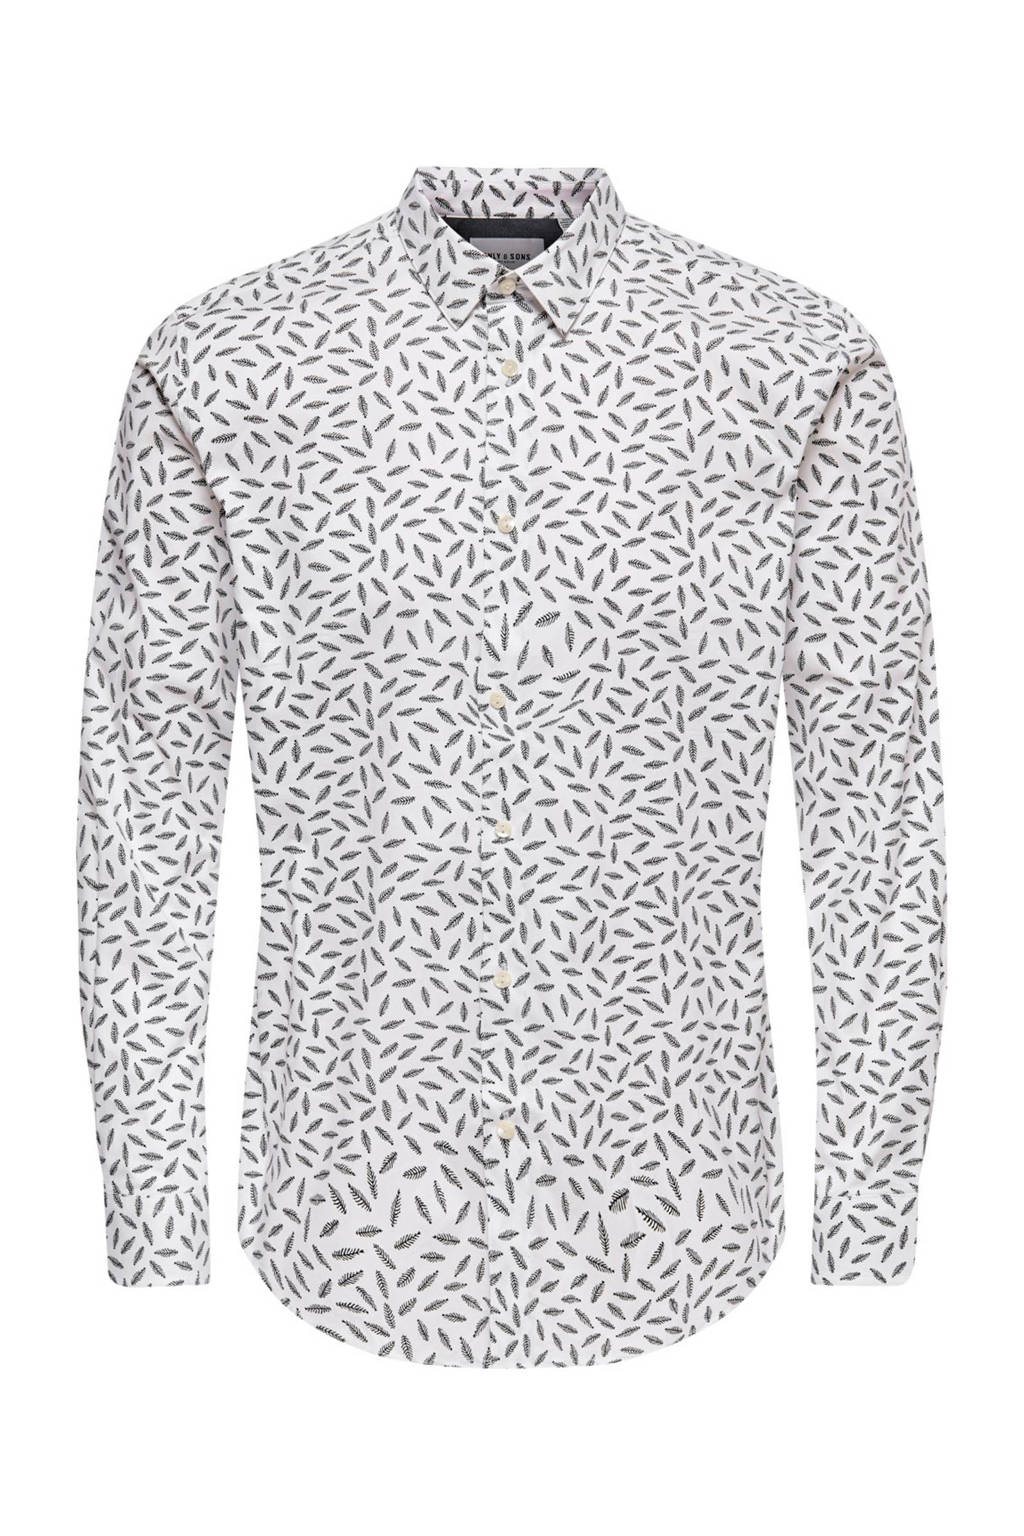 ONLY & SONS regular fit overhemd met all over print wit, Wit